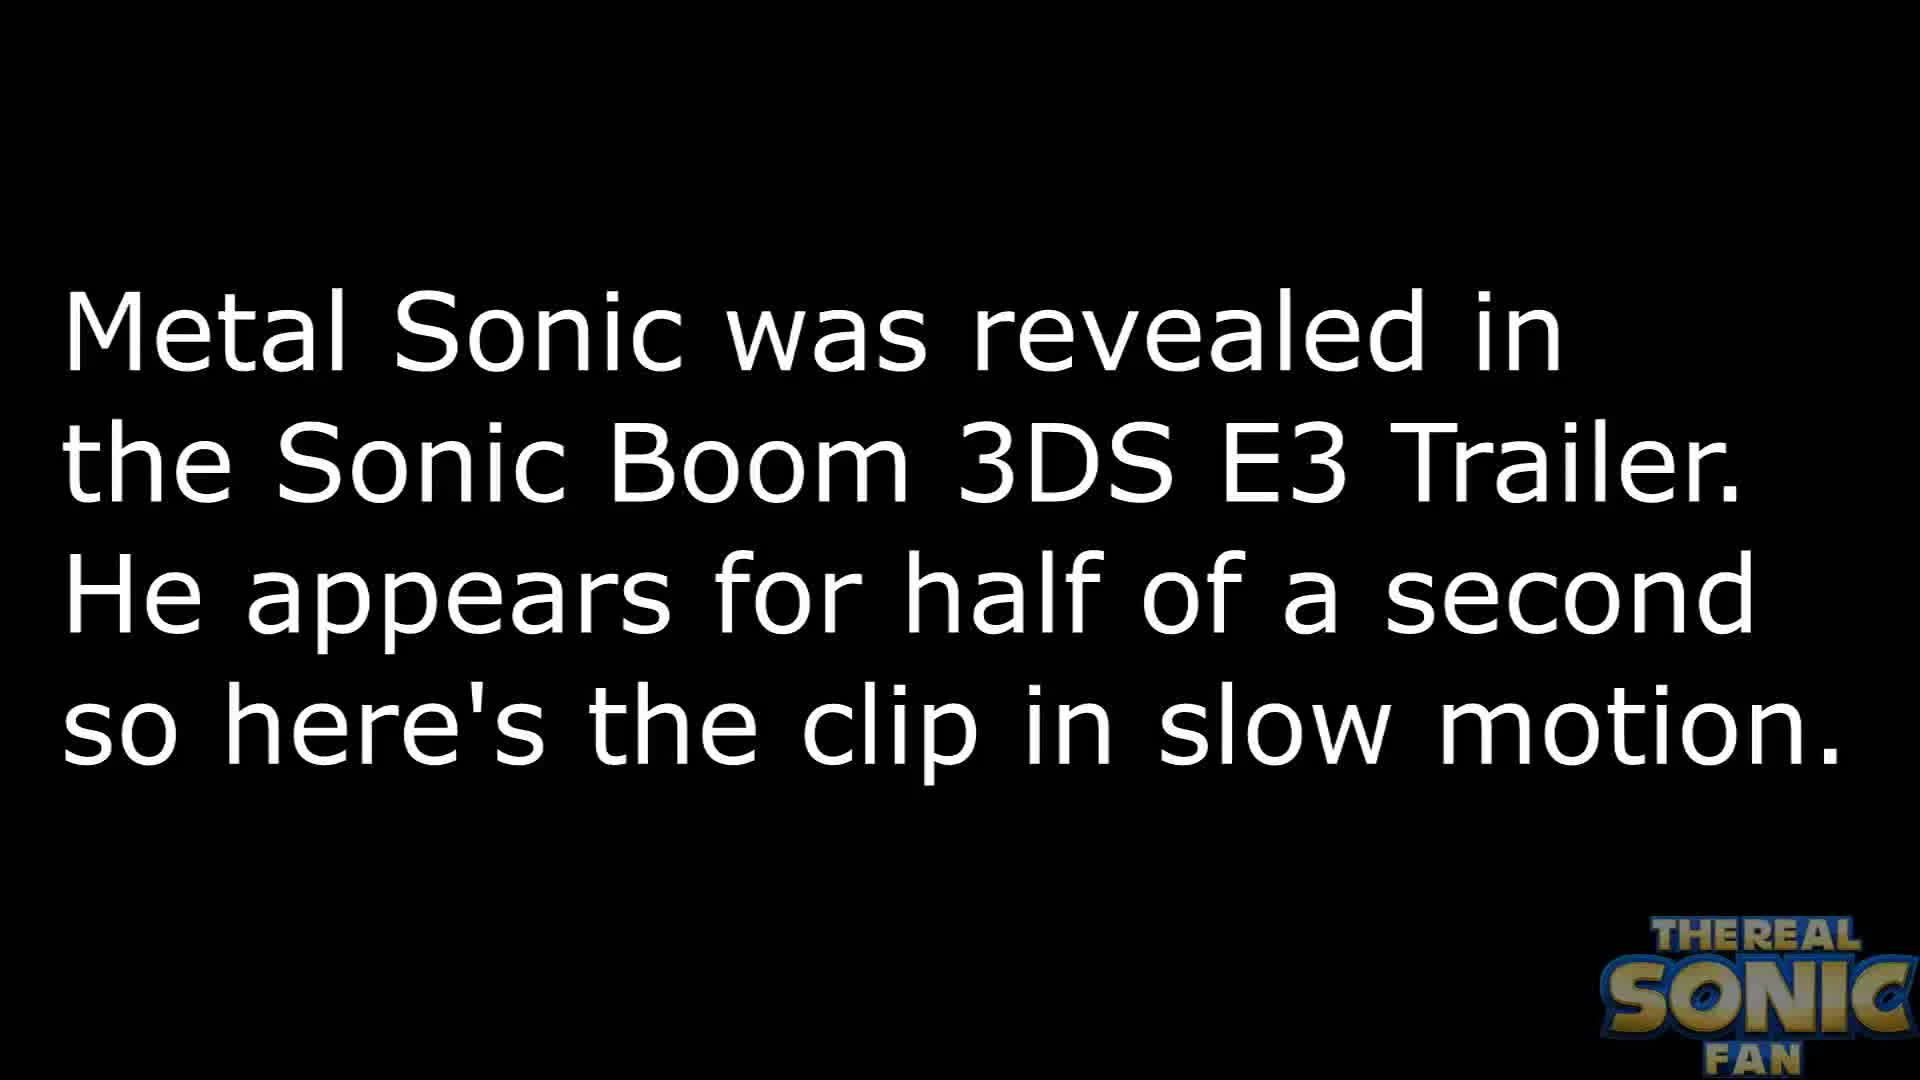 Sonic Boom Episode 1 Gifs Search | Search & Share on Homdor